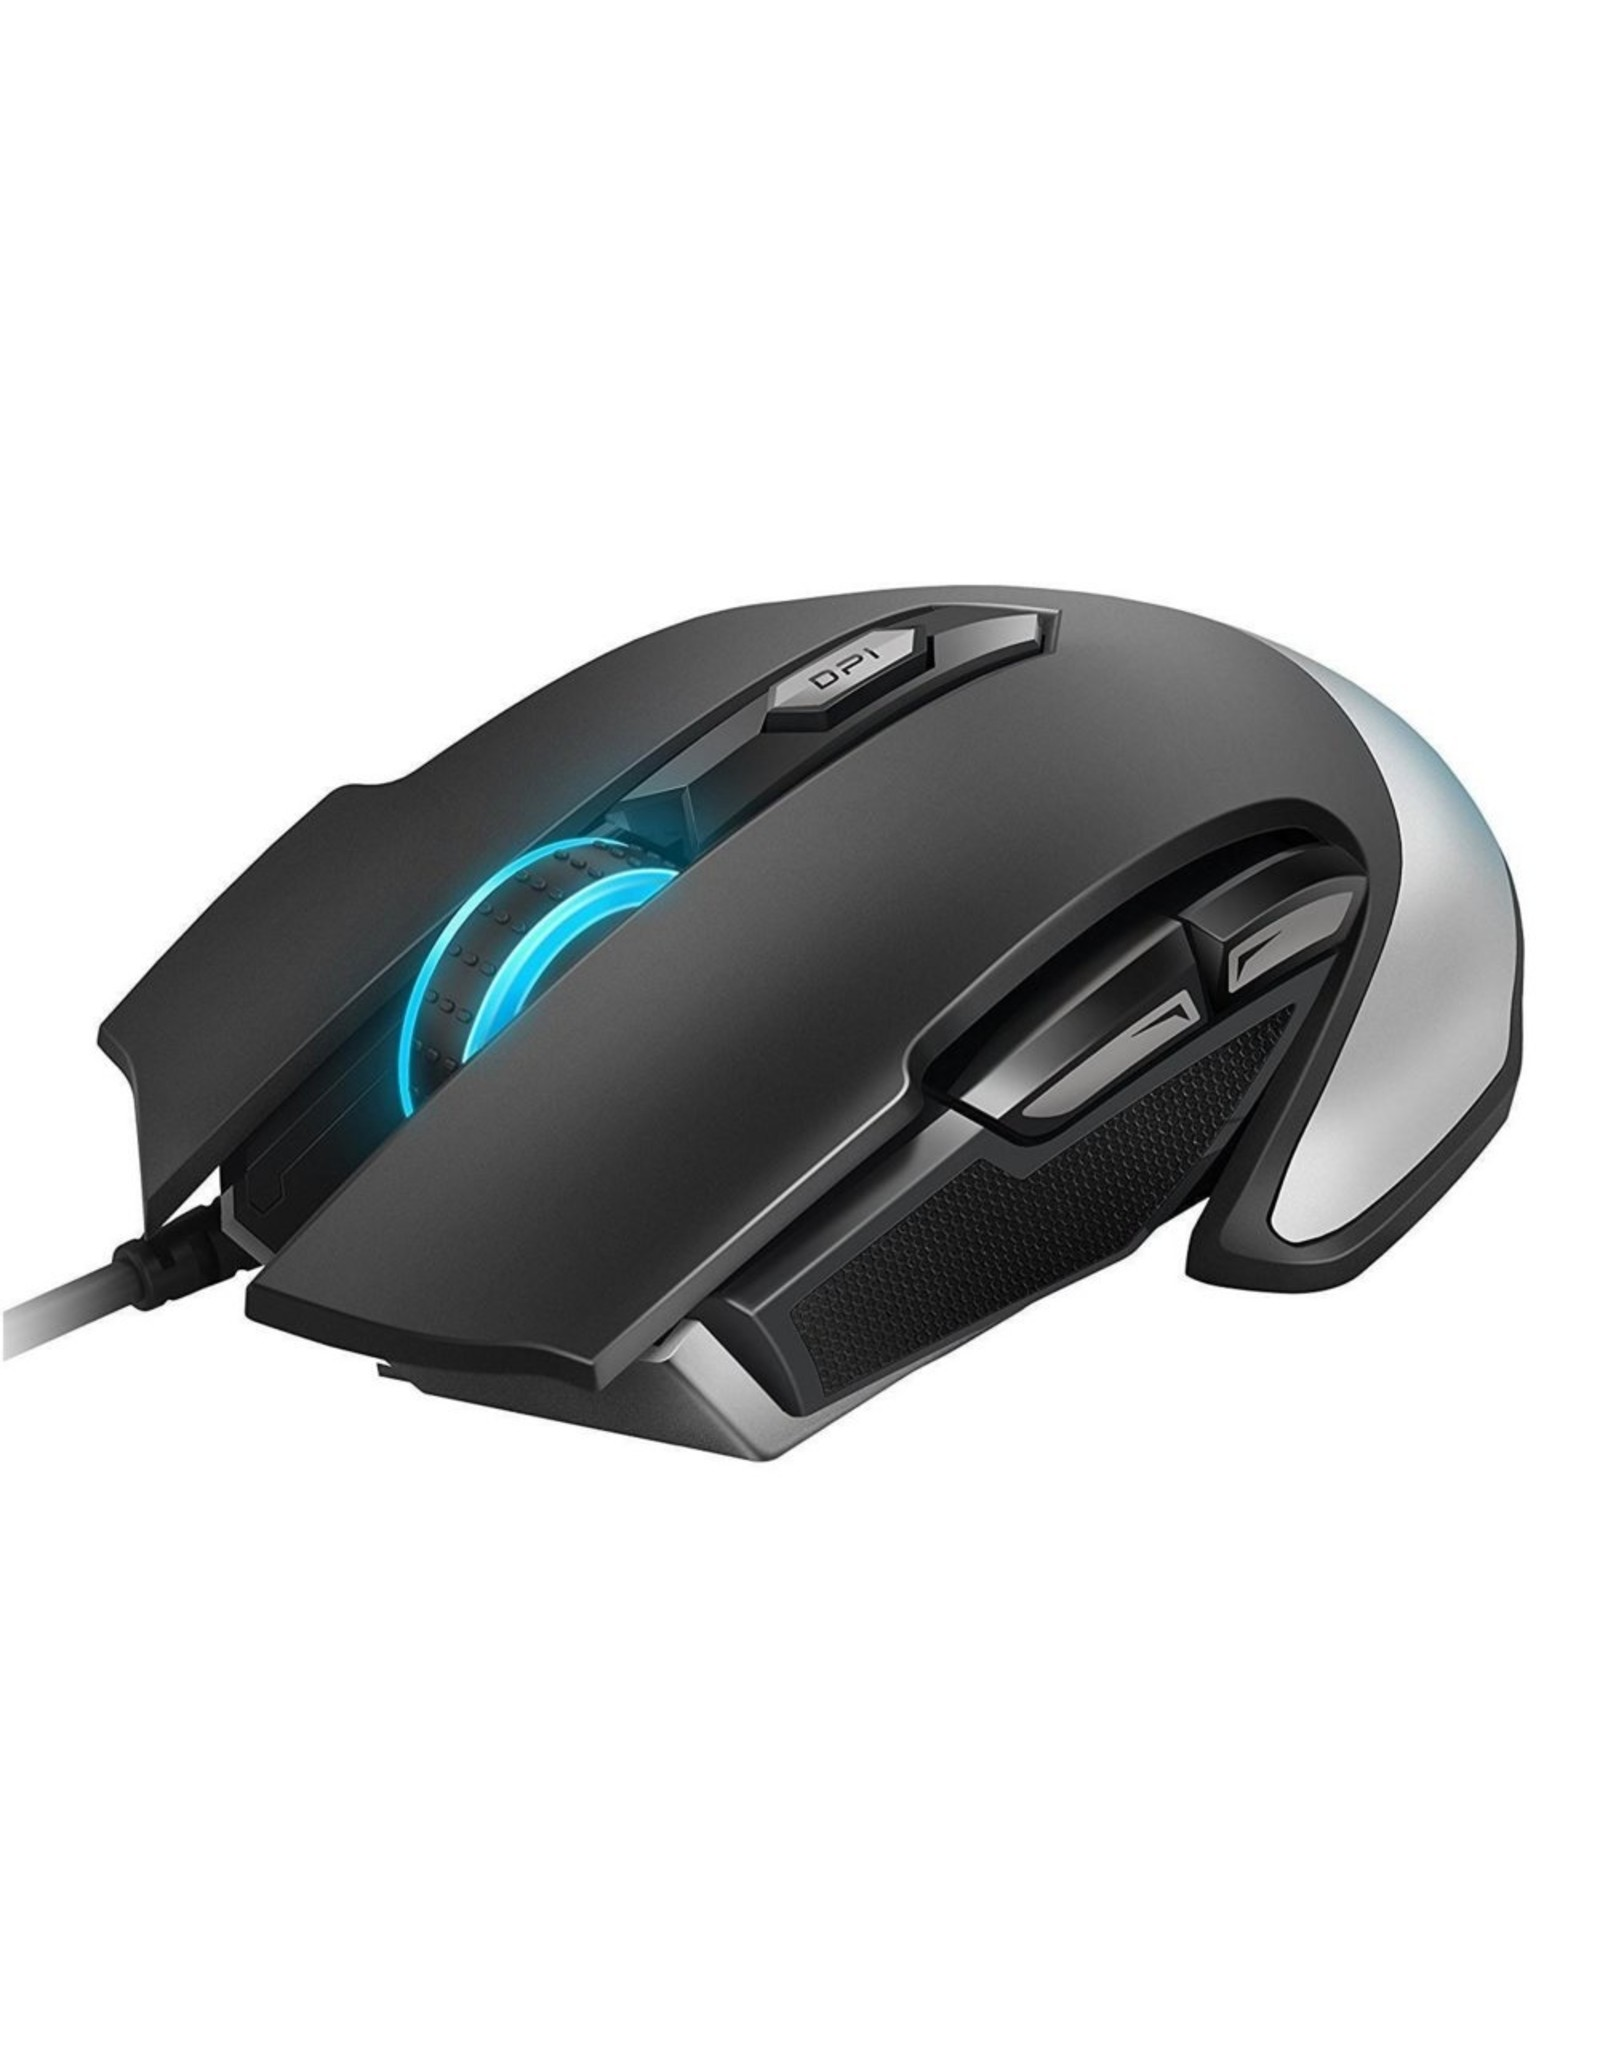 Rapoo V310 8200dpi Laser Gaming Mouse - Black